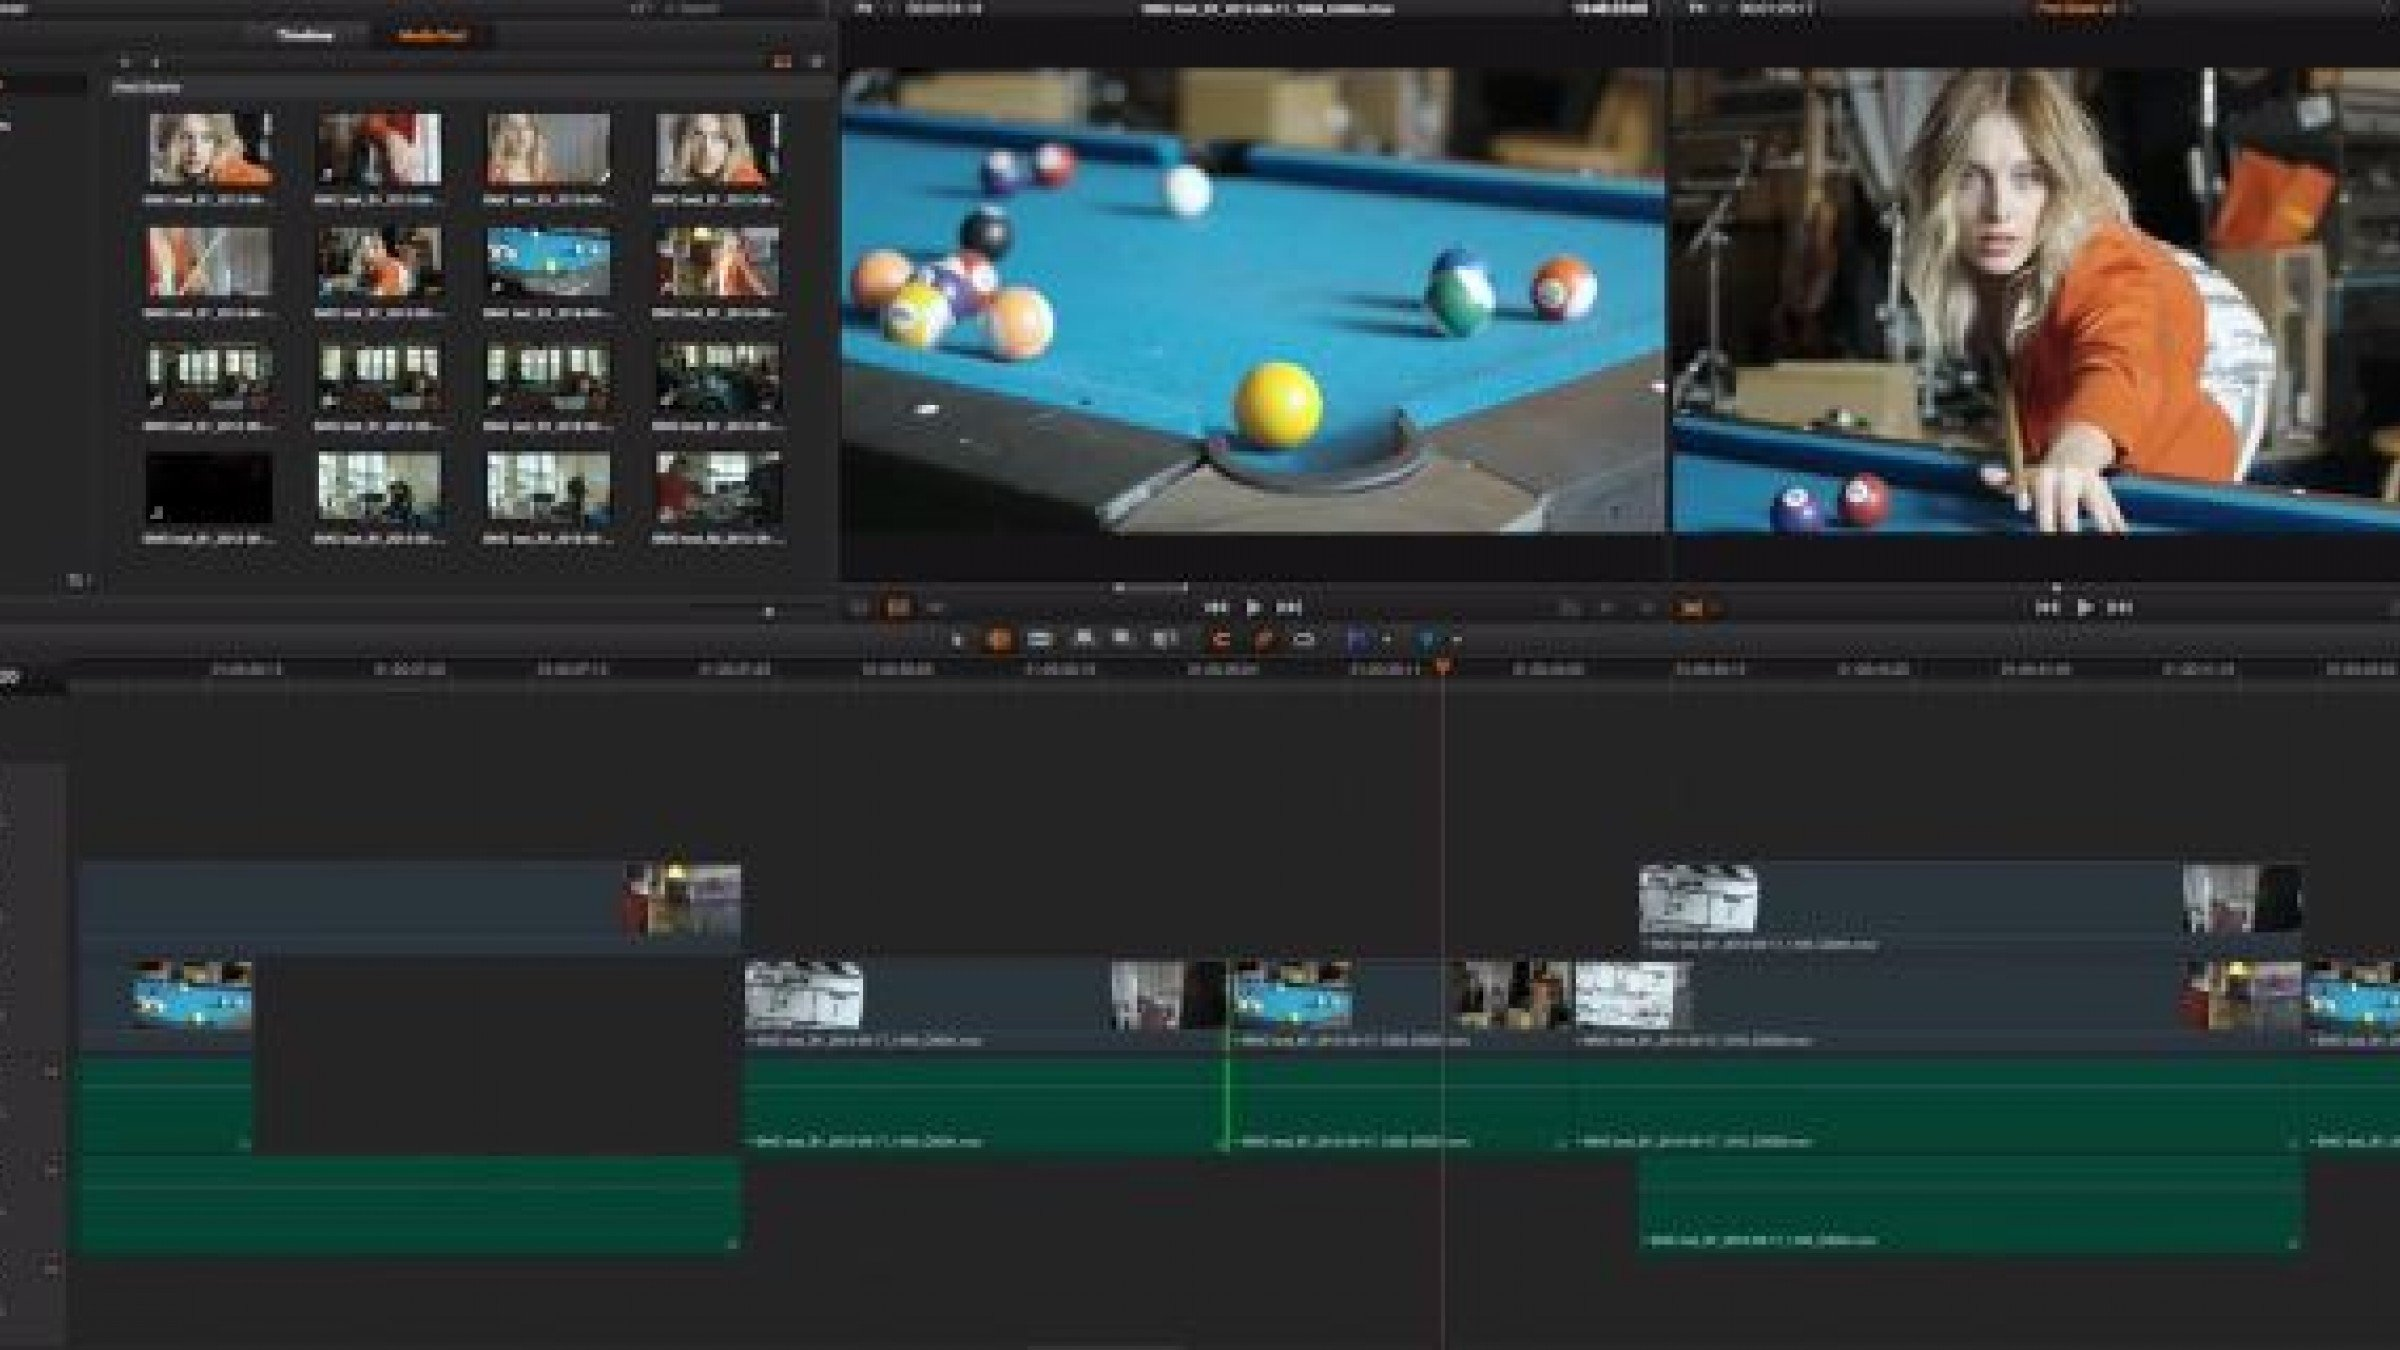 DaVinci Resolve 11 Public Beta Now Available, Contains over